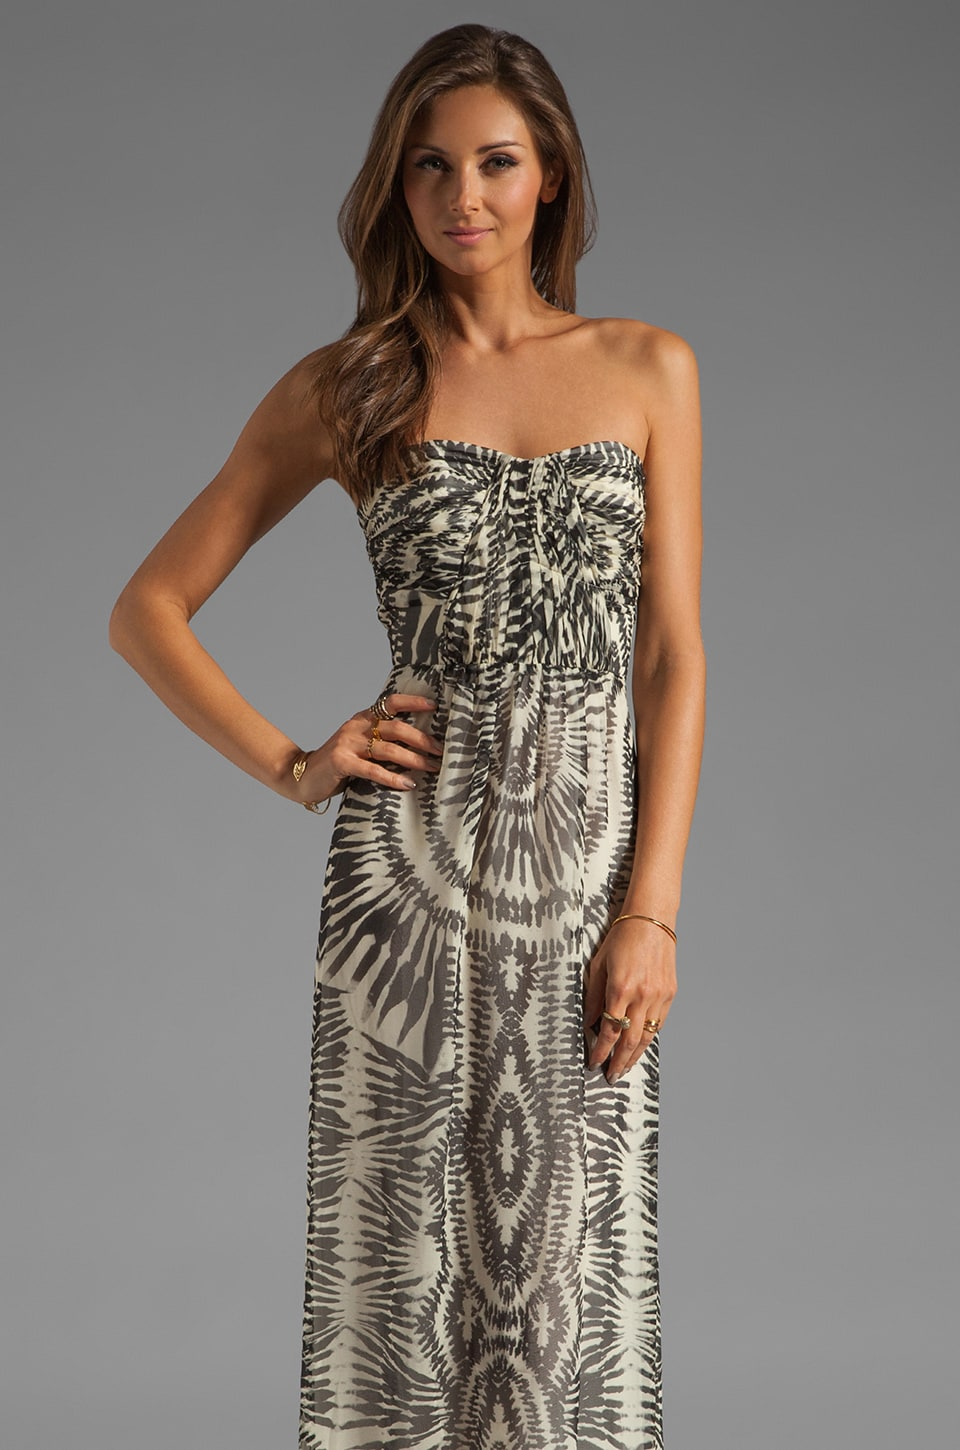 Twelfth Street By Cynthia Vincent Bermudian Draped Bodice Maxi Dress in Zebra Tie Dye